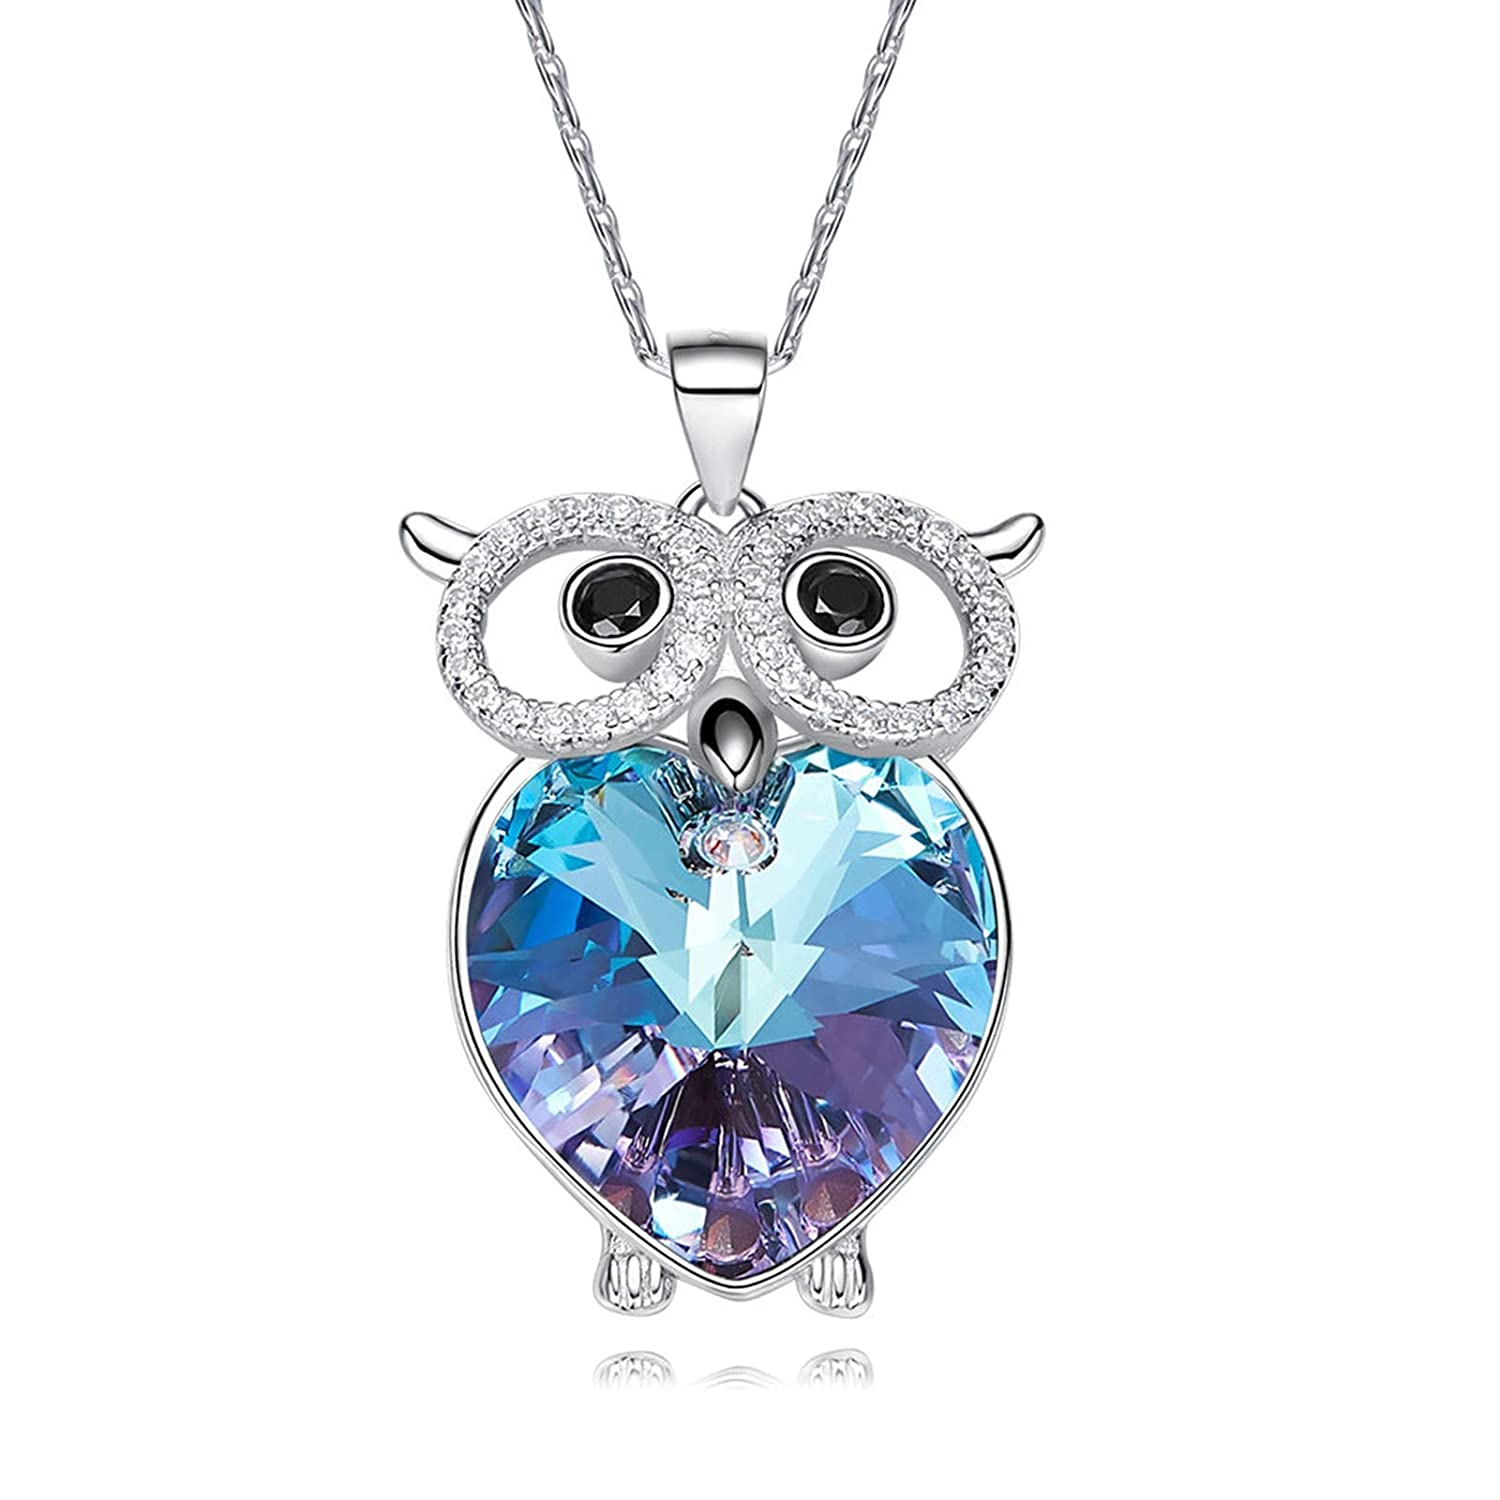 Adisaer Rhinestone Necklace Shirt Sterling Silver Plated Heart Cz Owl Heart of The Ocean Cute Owlwomens Necklace Gift